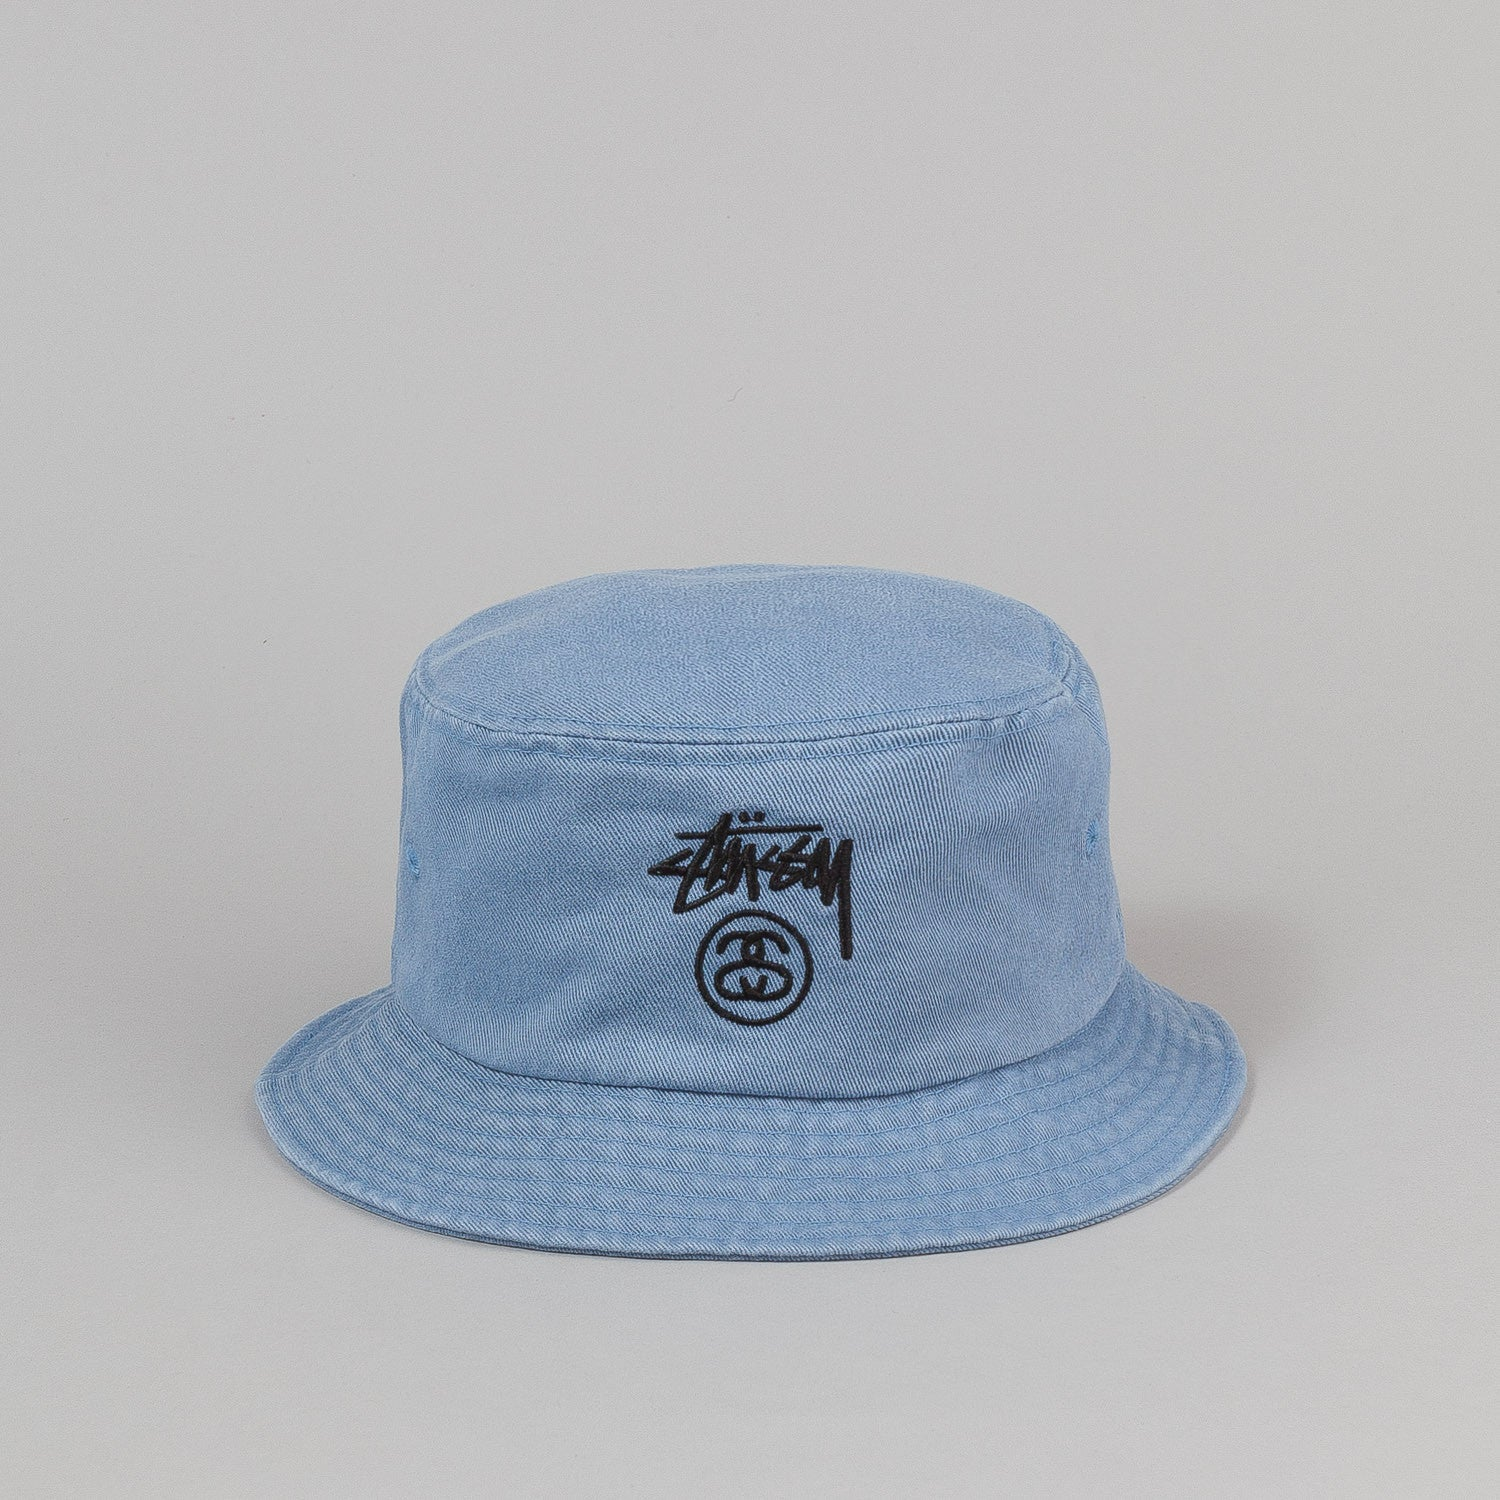 Stussy Stock Lock Denim Bucket Hat - Indigo